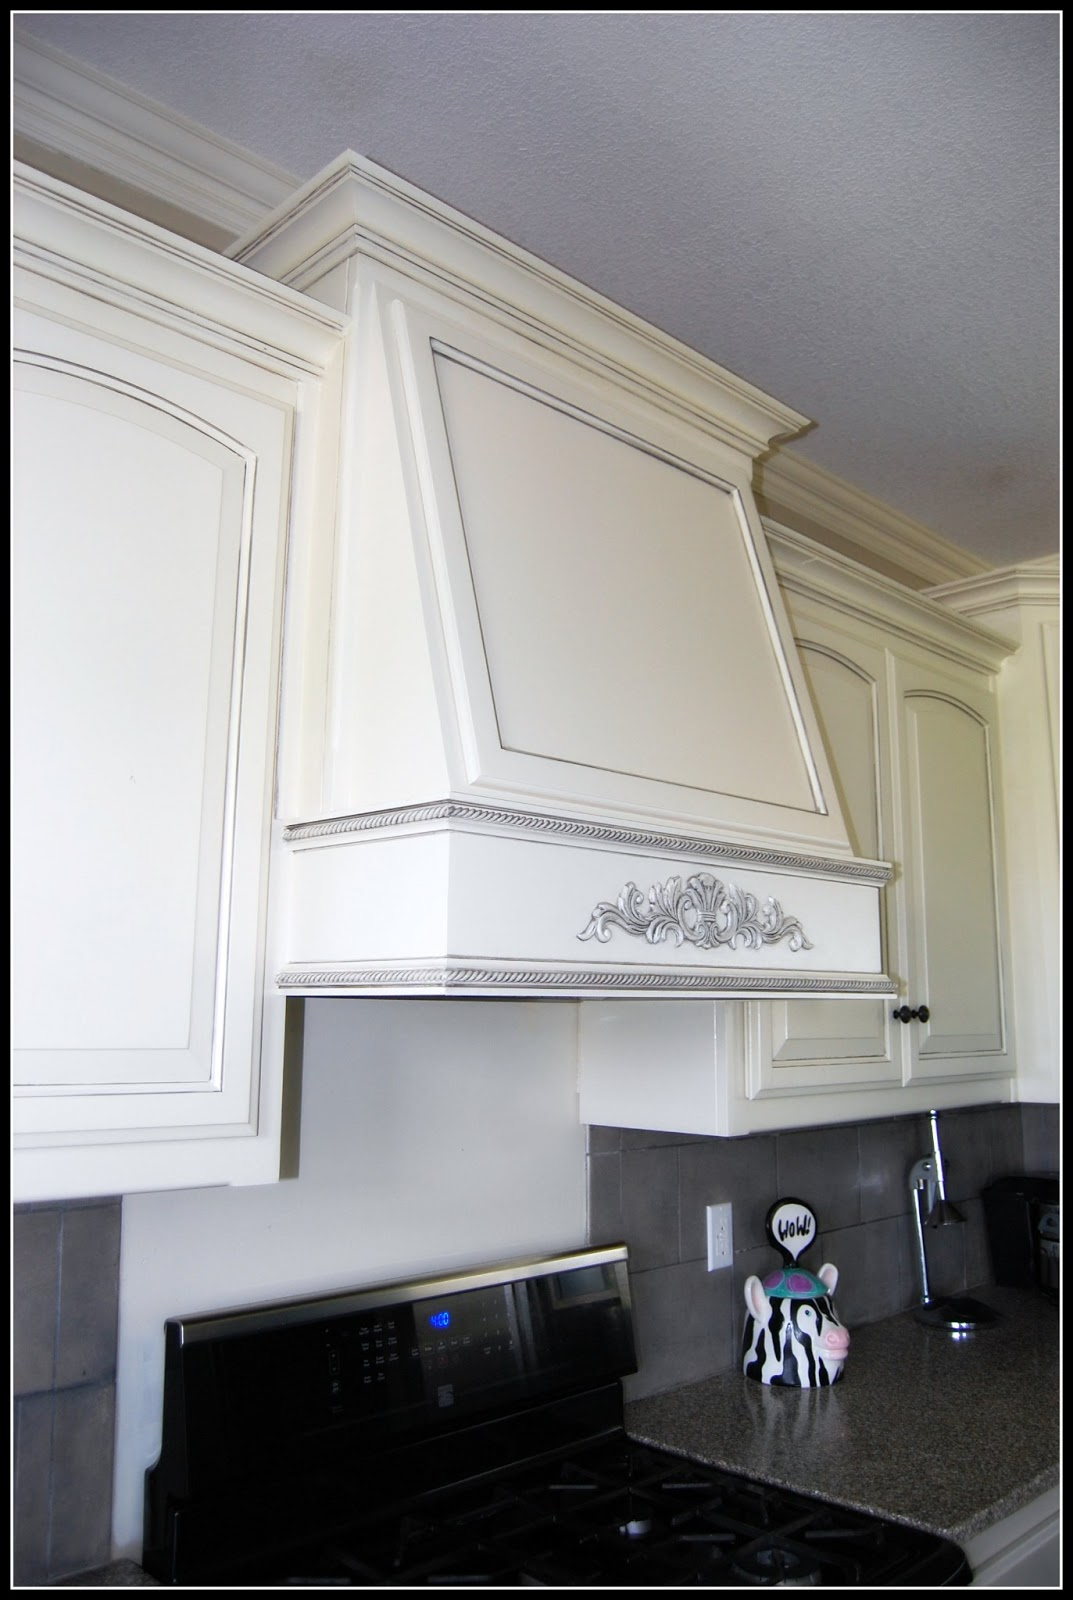 To match your kitchen cabinets how to paint kitchen cabinets - Kcfauxdesign Com Diy Decorative Hood Range Vent